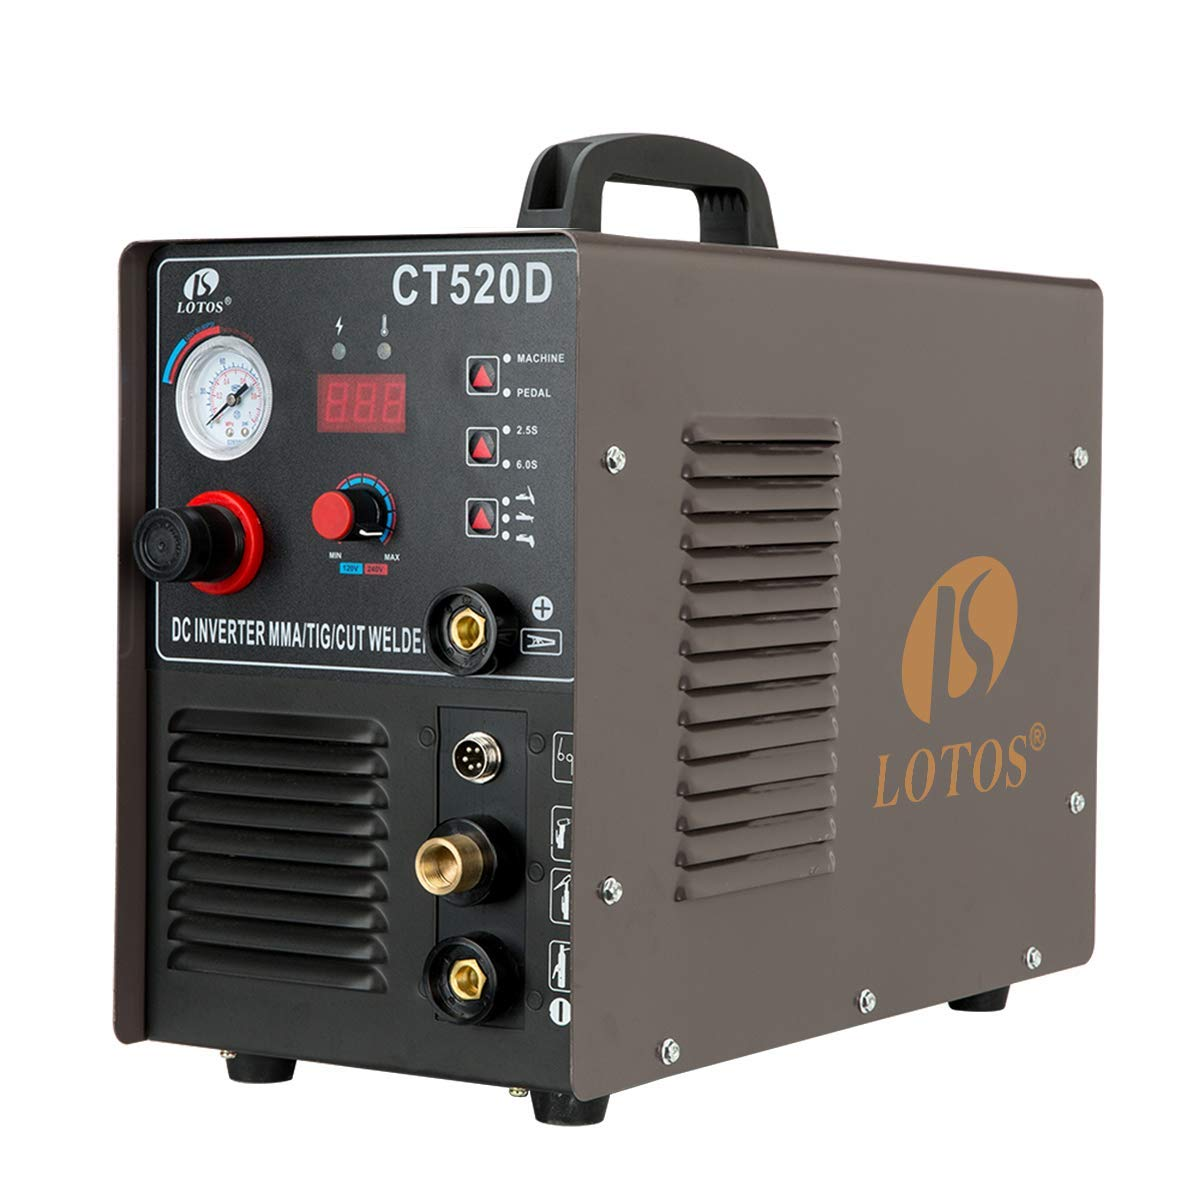 Lotos CT520D 50 AMP Air Plasma Cutter, 200 AMP Tig and Stick/MMA/ARC Welder 3 in 1 Combo Welding Machine, ½ Inch Clean Cut Brown by Lotos Technology